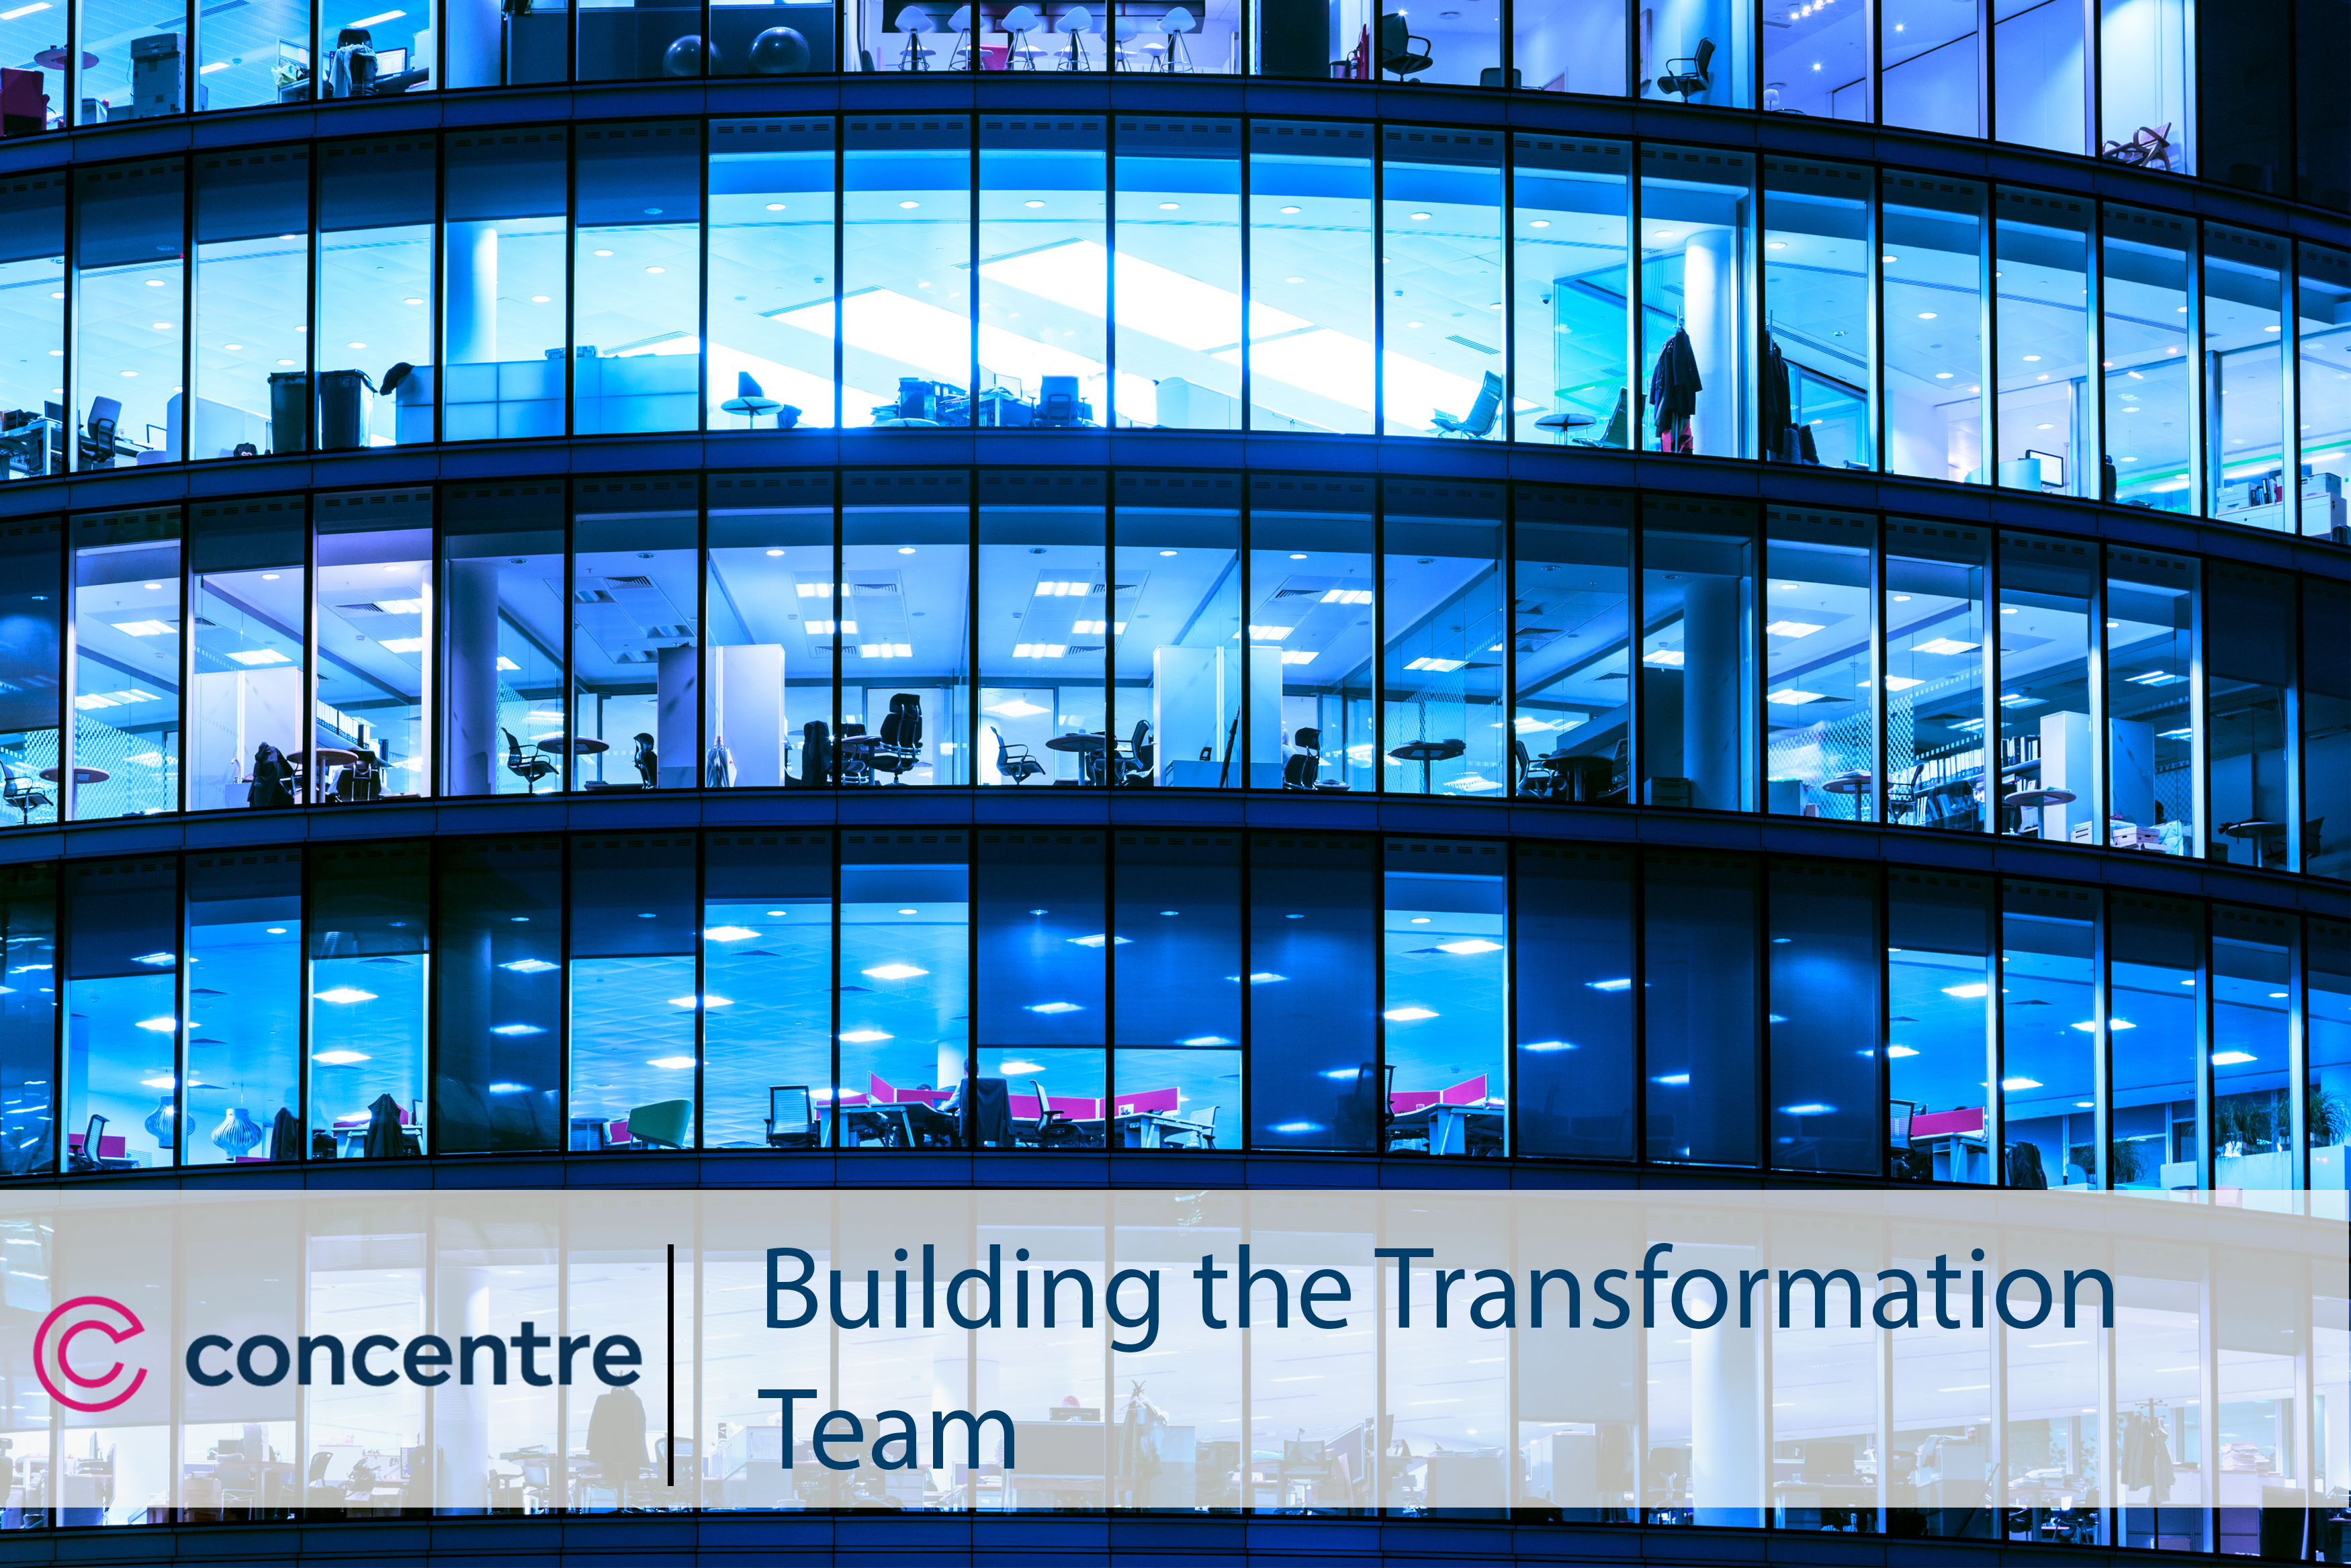 Building the Transformation Team